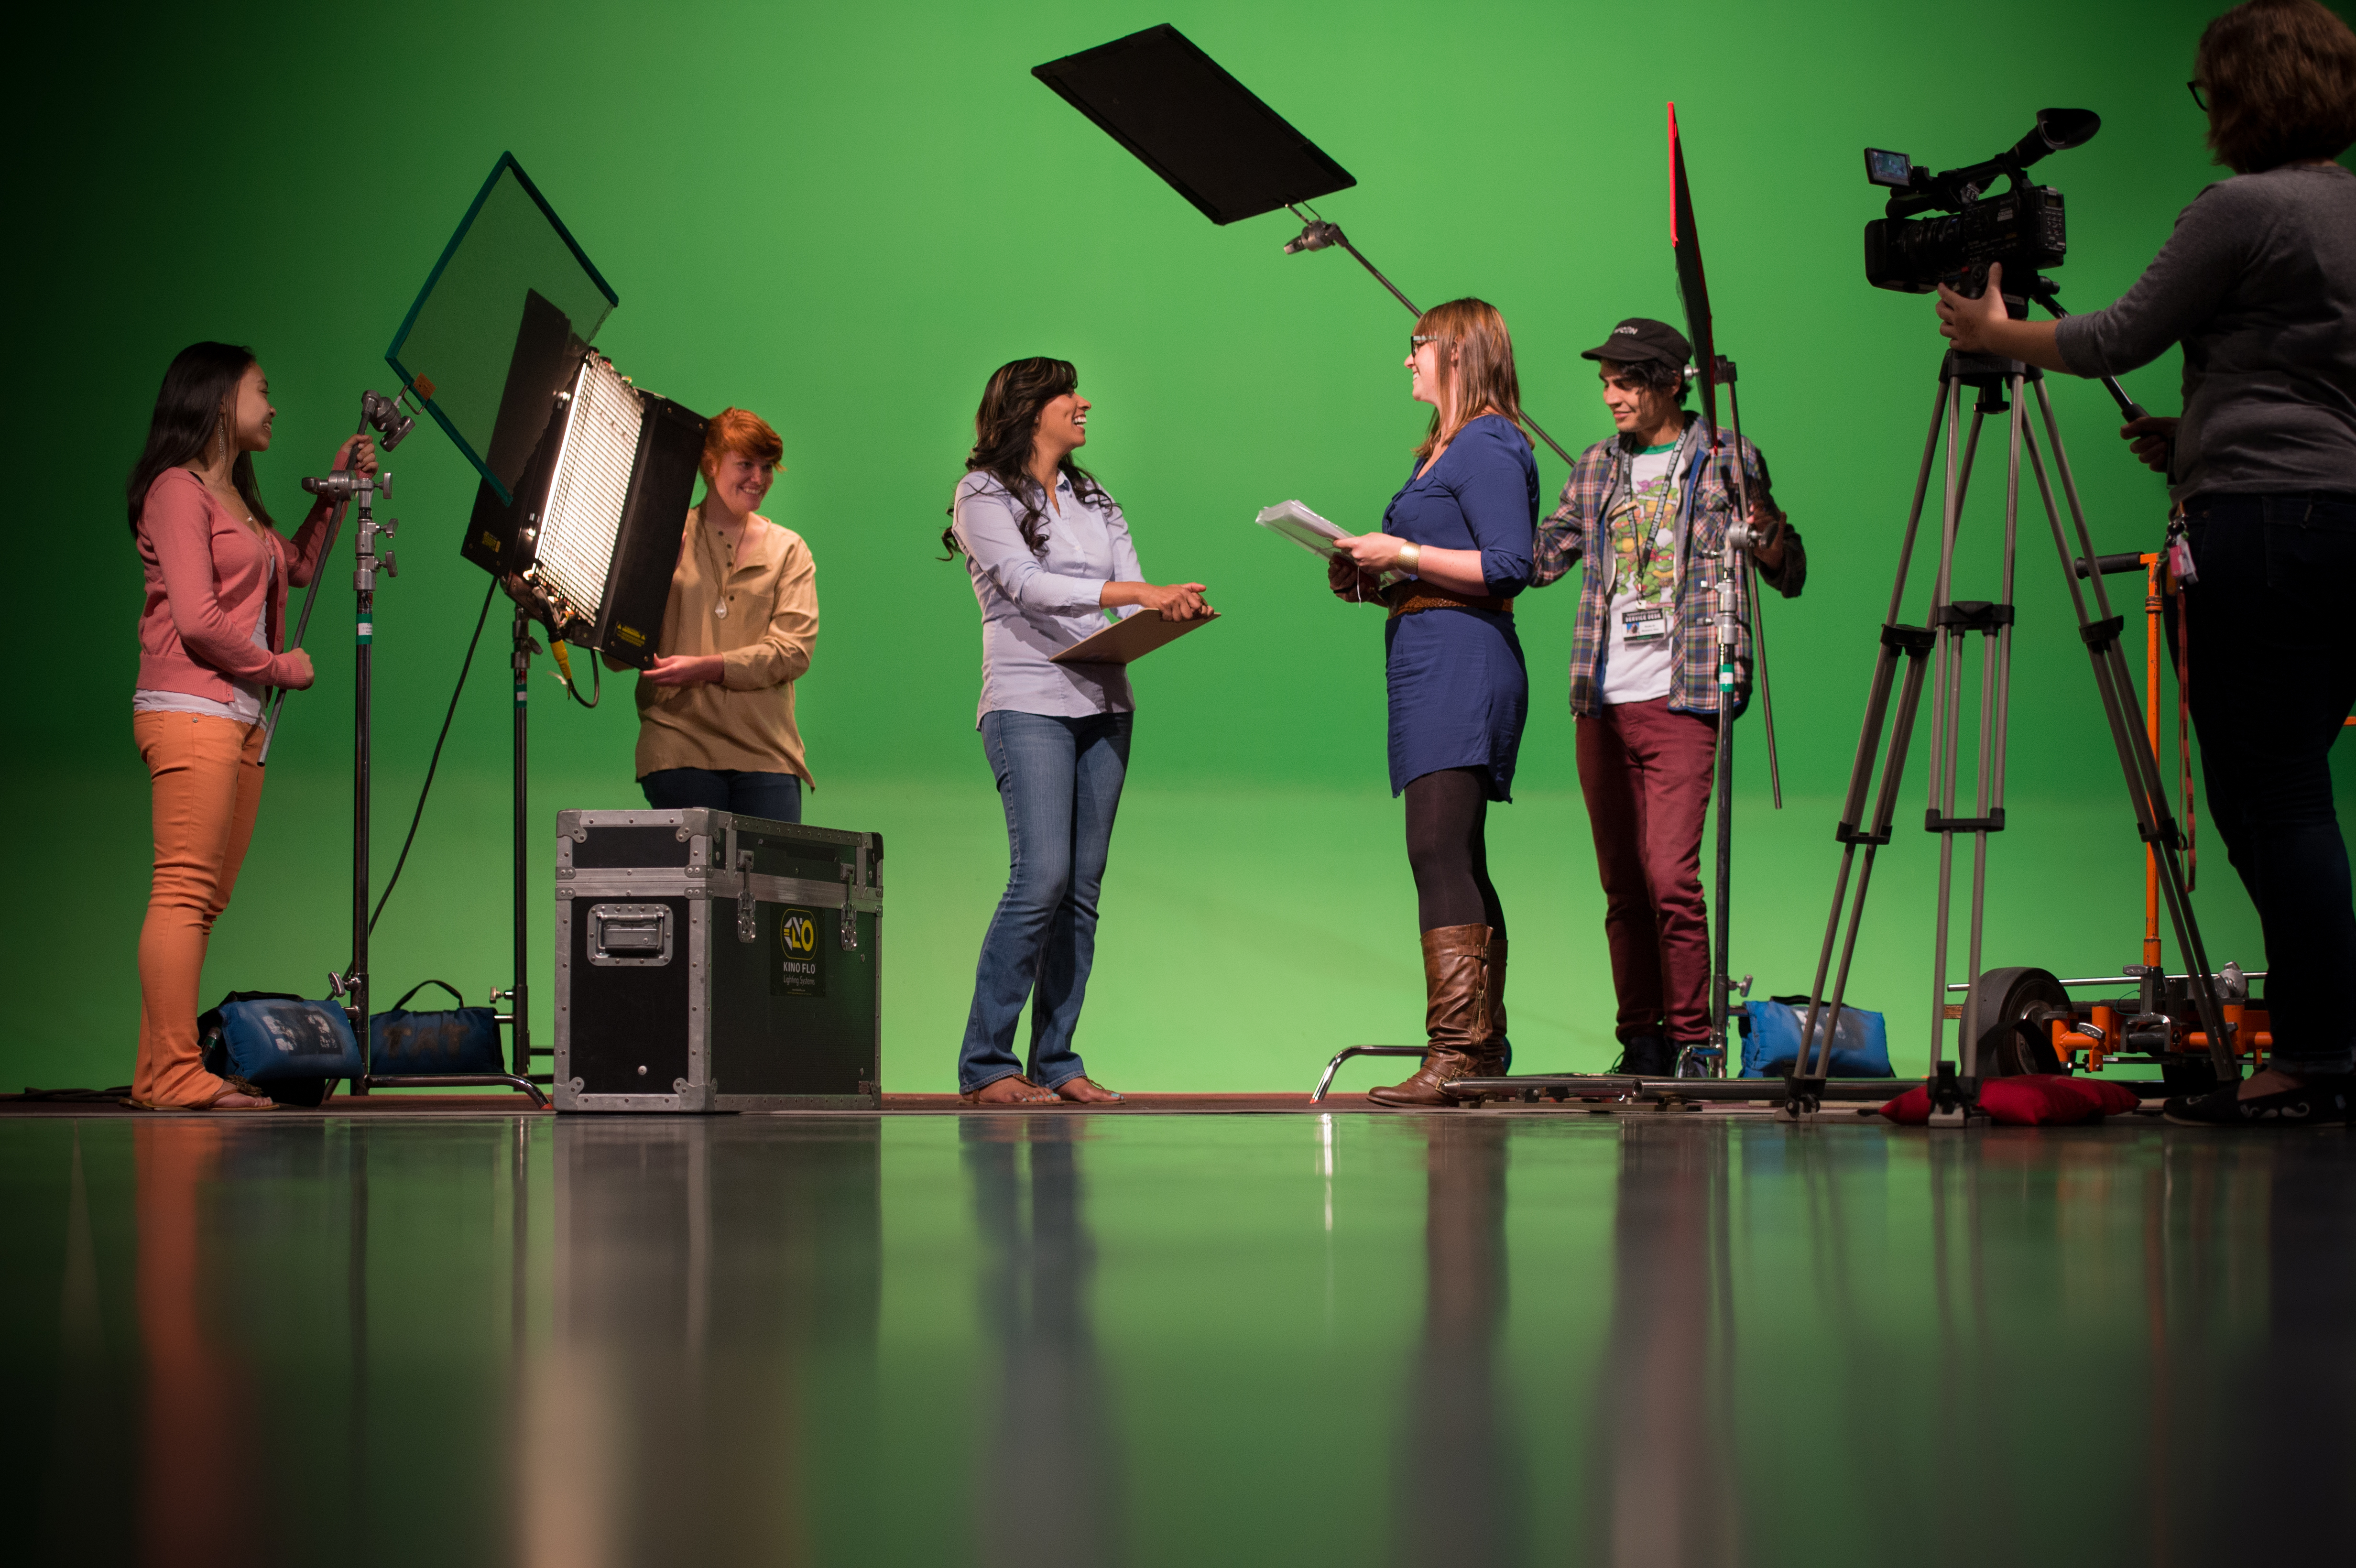 Students in the Cinematic Arts studio.